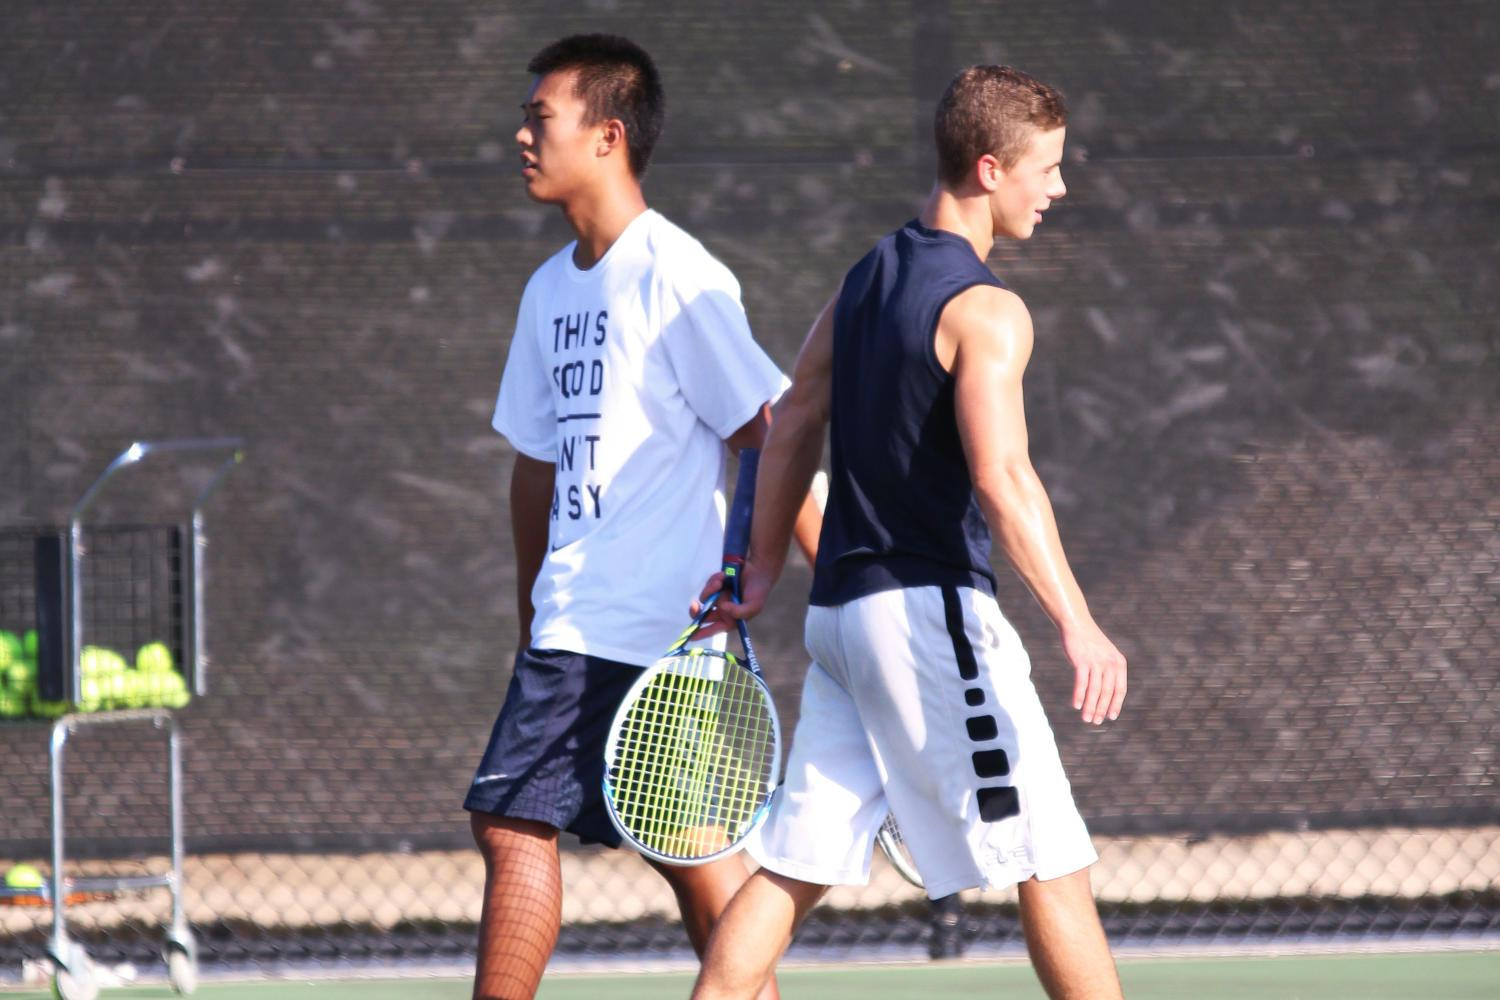 Juniors+Chris+Sun+and+Jack+Bennett+will+compete+at+Texas+A%26M+this+weekend+for+state+doubles.